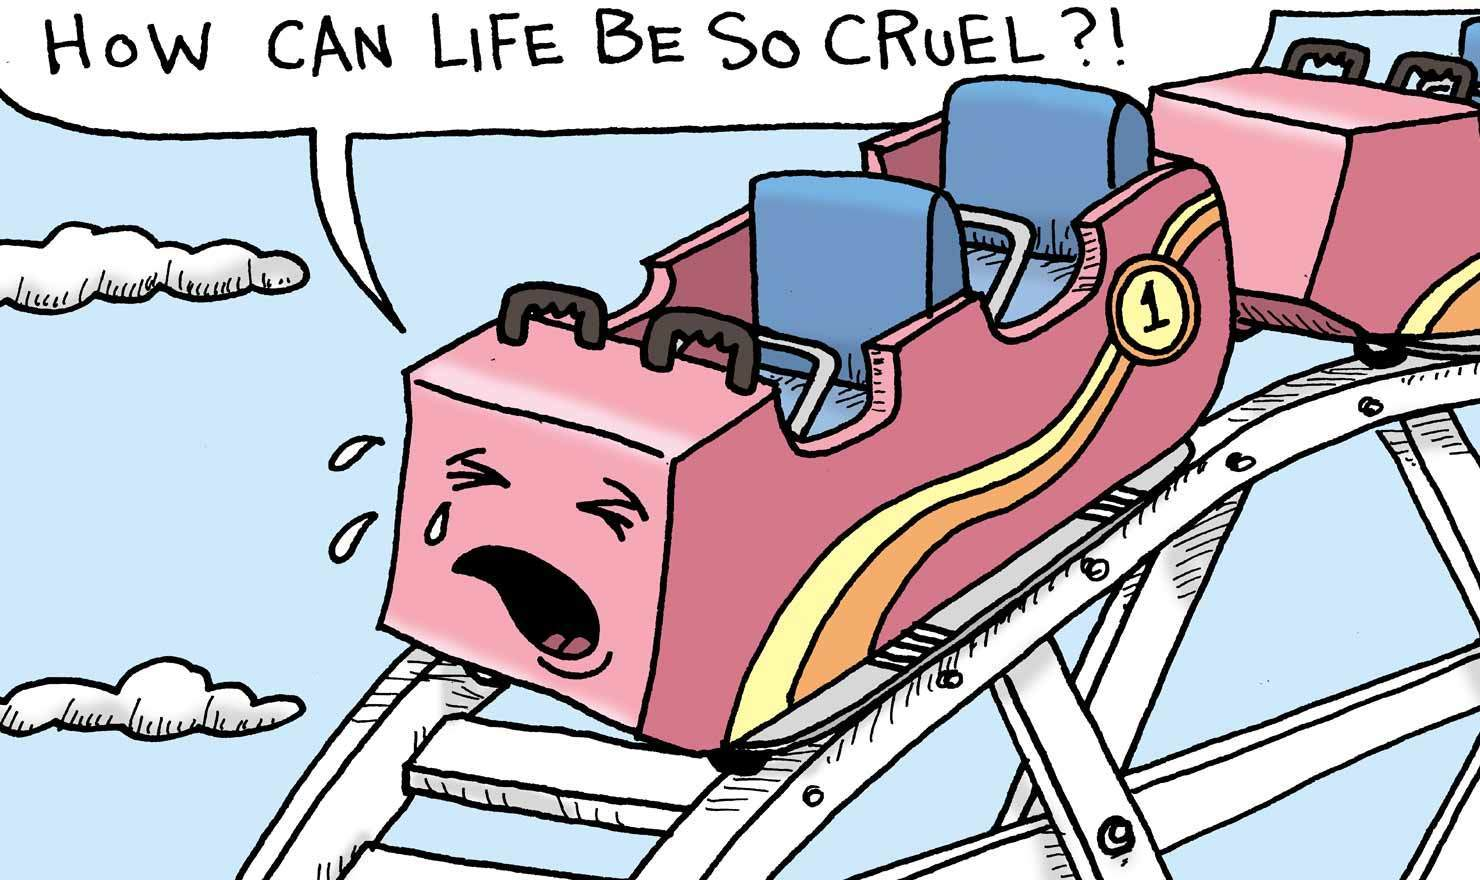 Emotional Comics For Roller Coaster Day